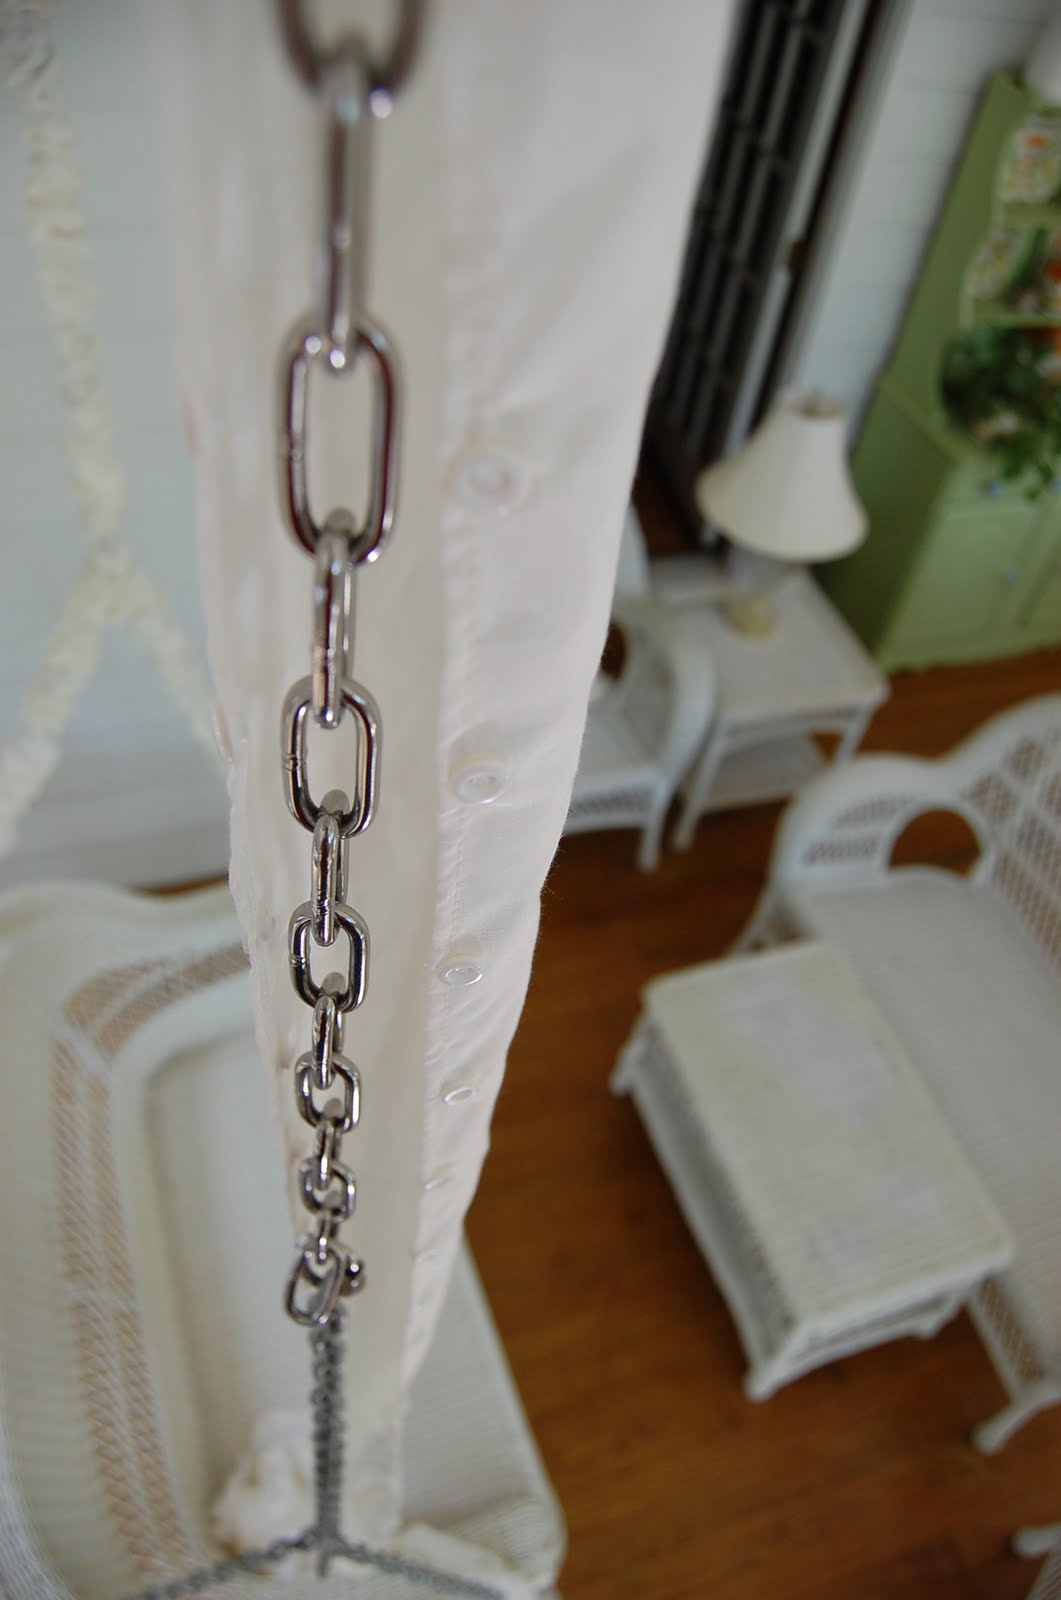 Hiding and Covering Metal Swing Chains Easily